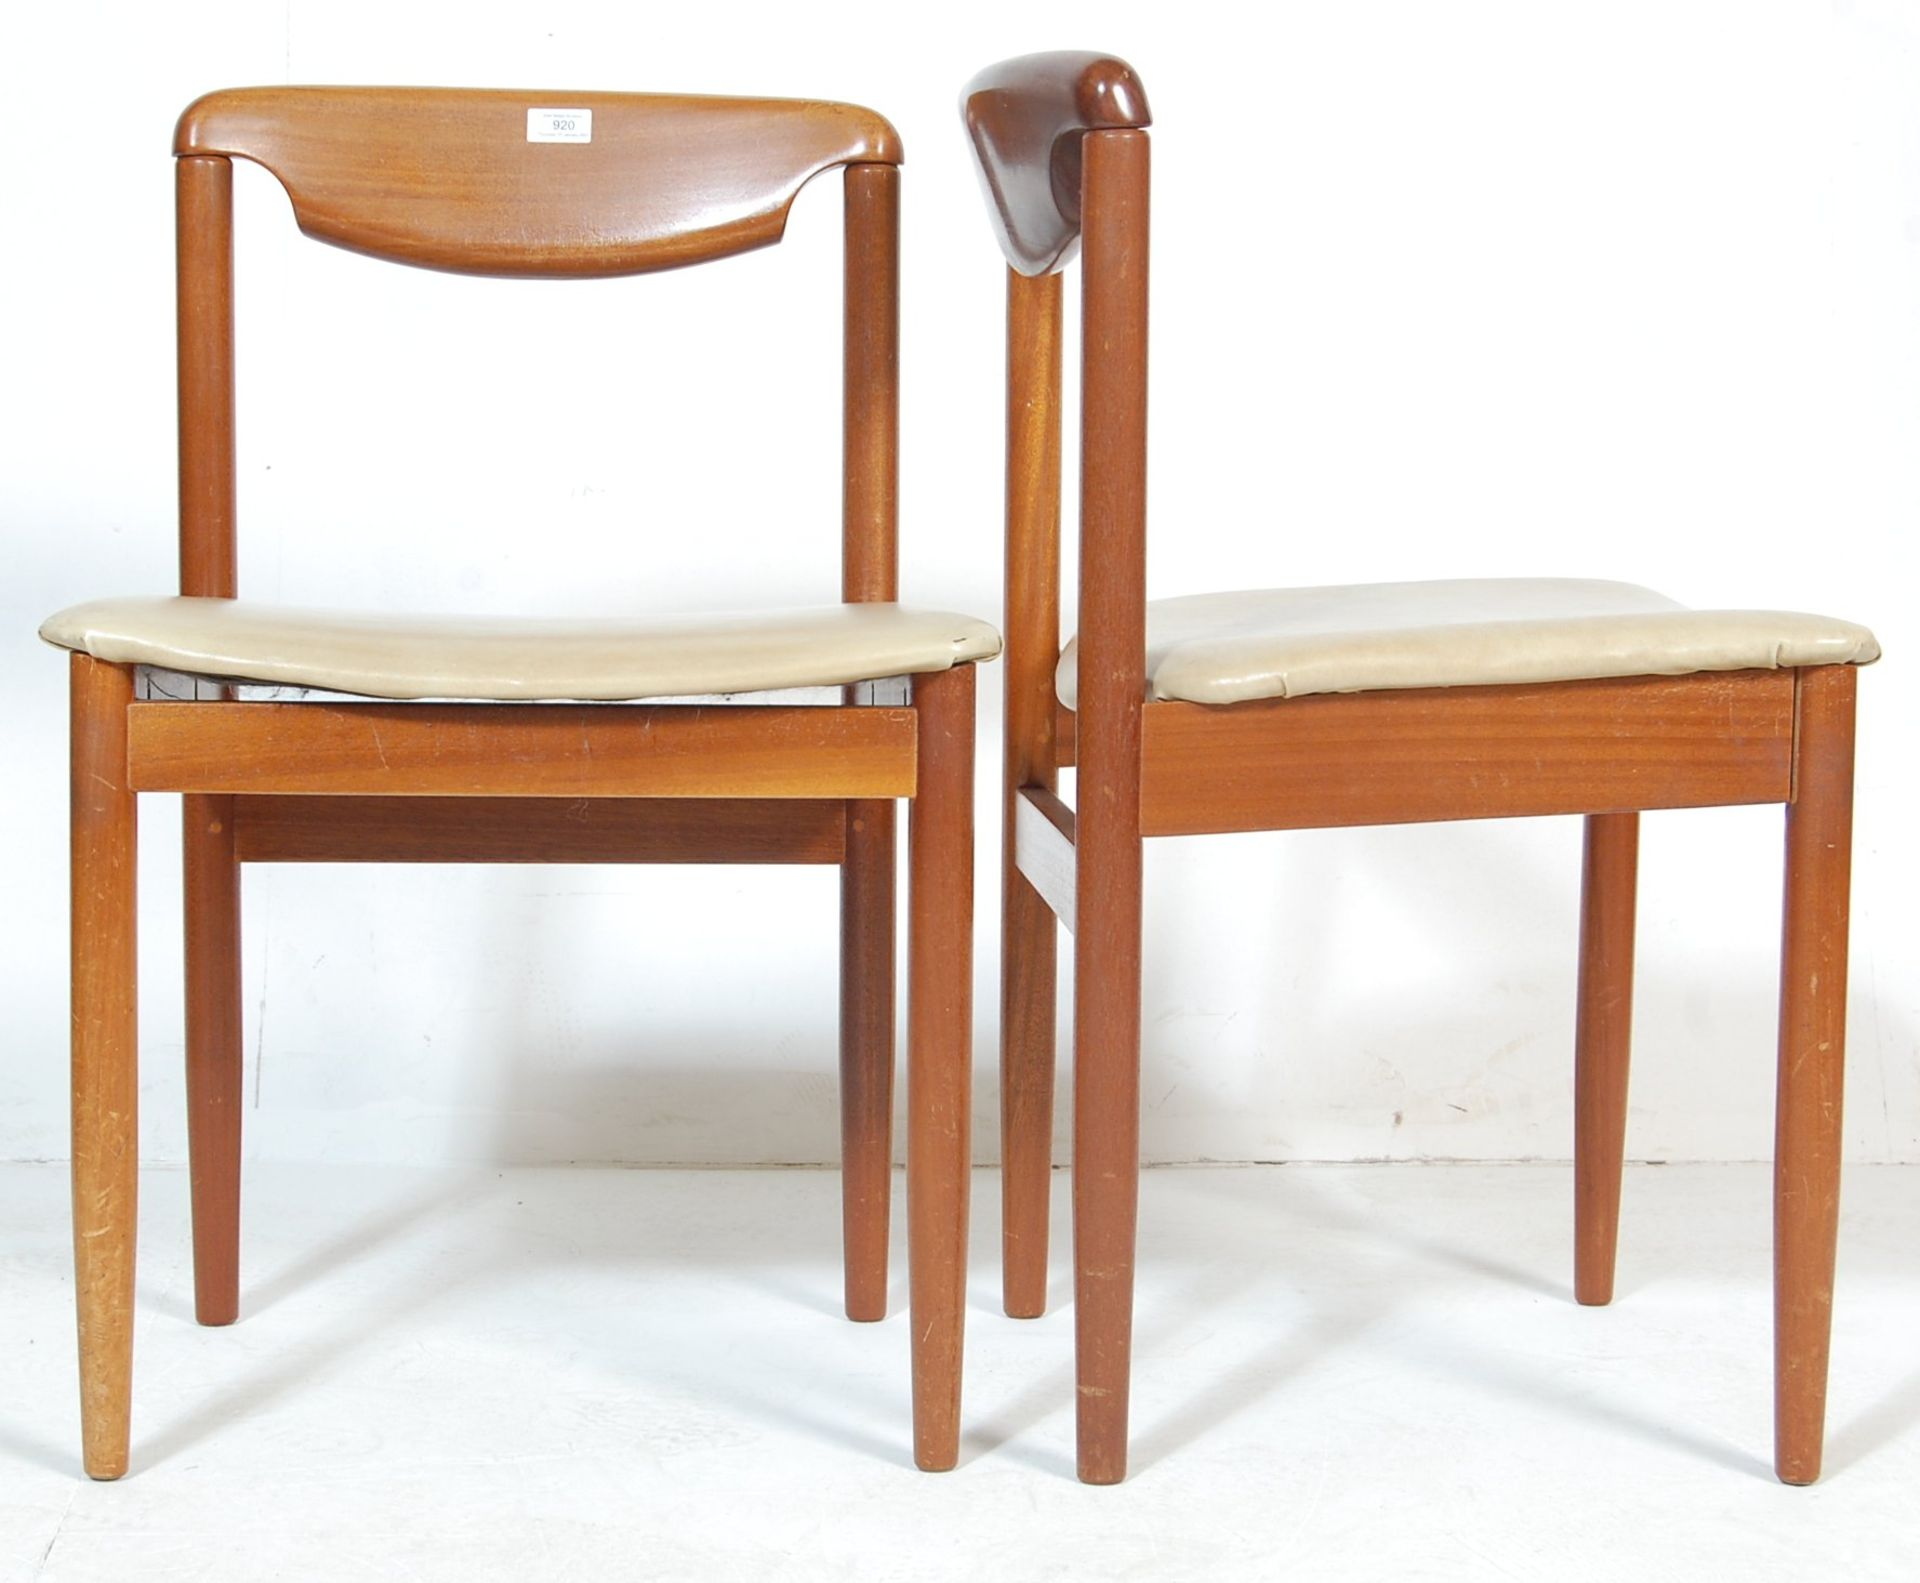 FOUR RETRO TEAK WOOD DINING CHAIRS WITH LEATHER SEATS - Image 4 of 5